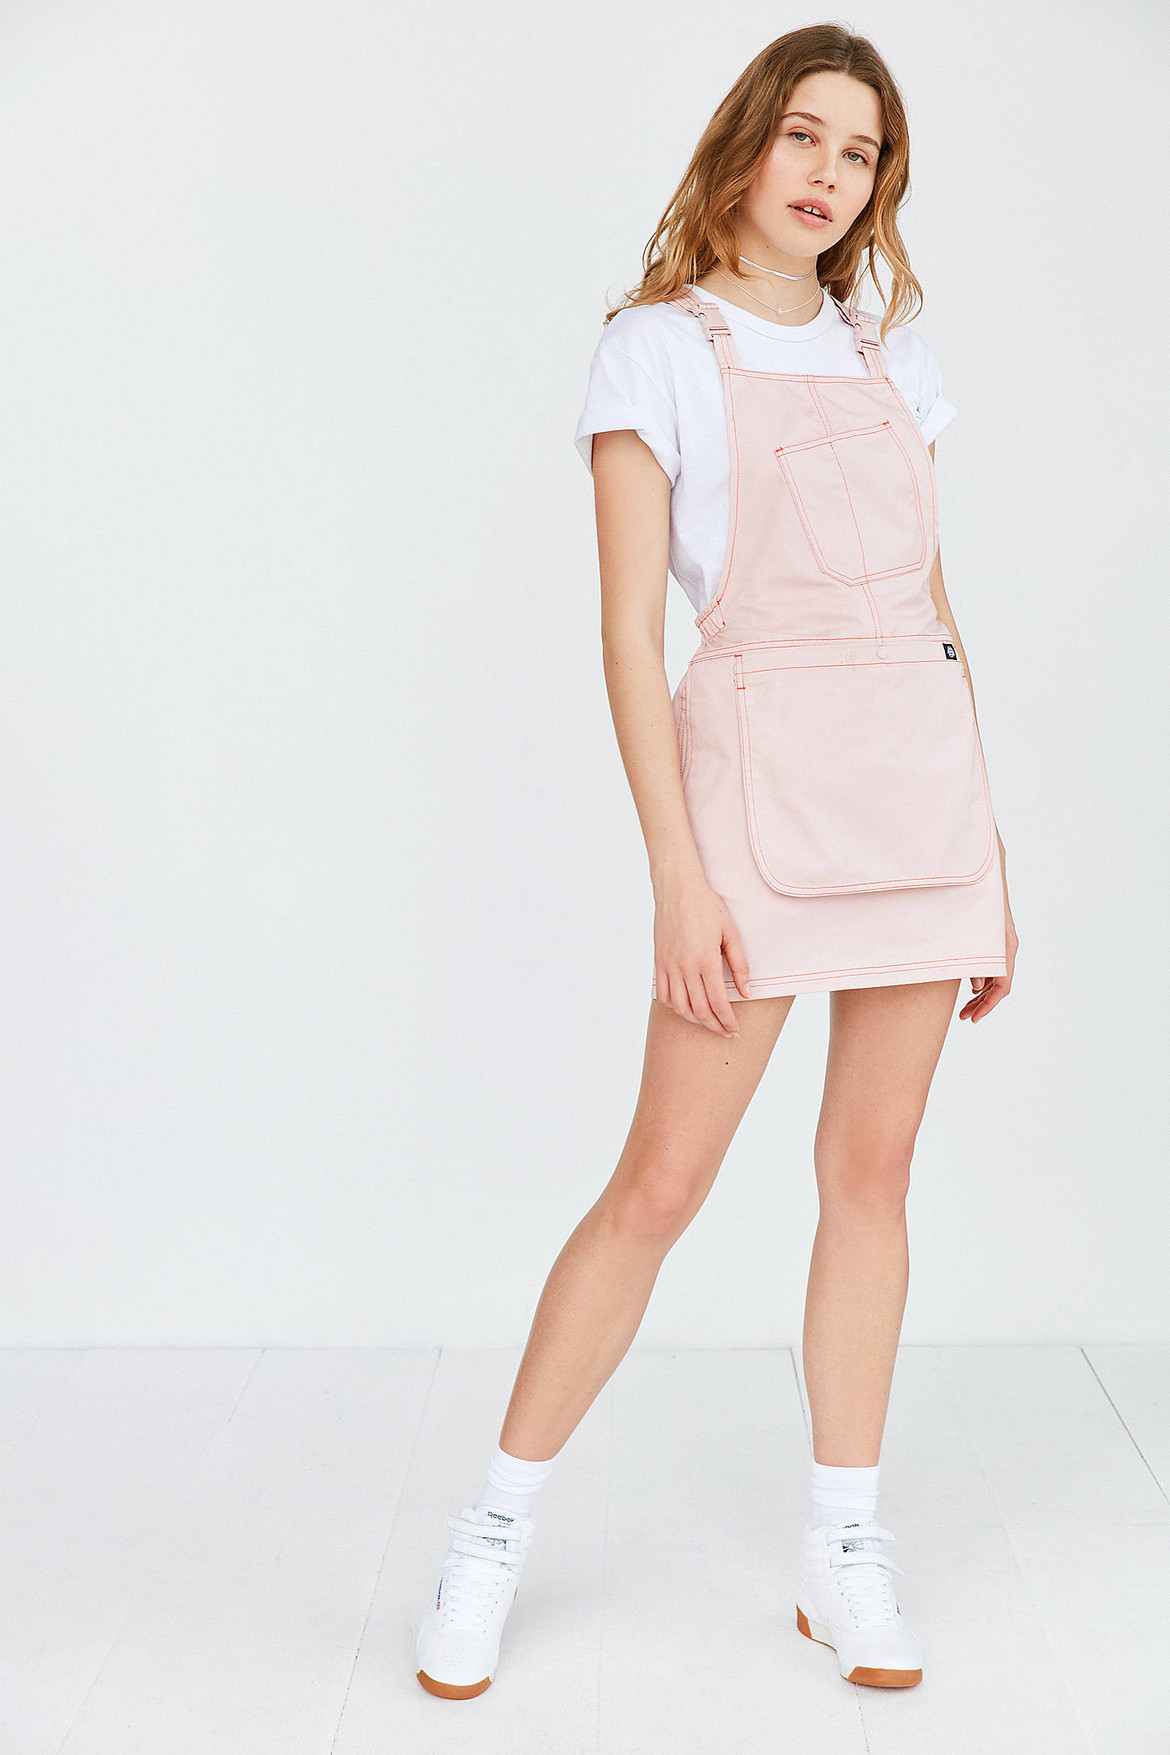 Dickies X Urban Outfitters Pink Bib Dress On Sale Hypebae